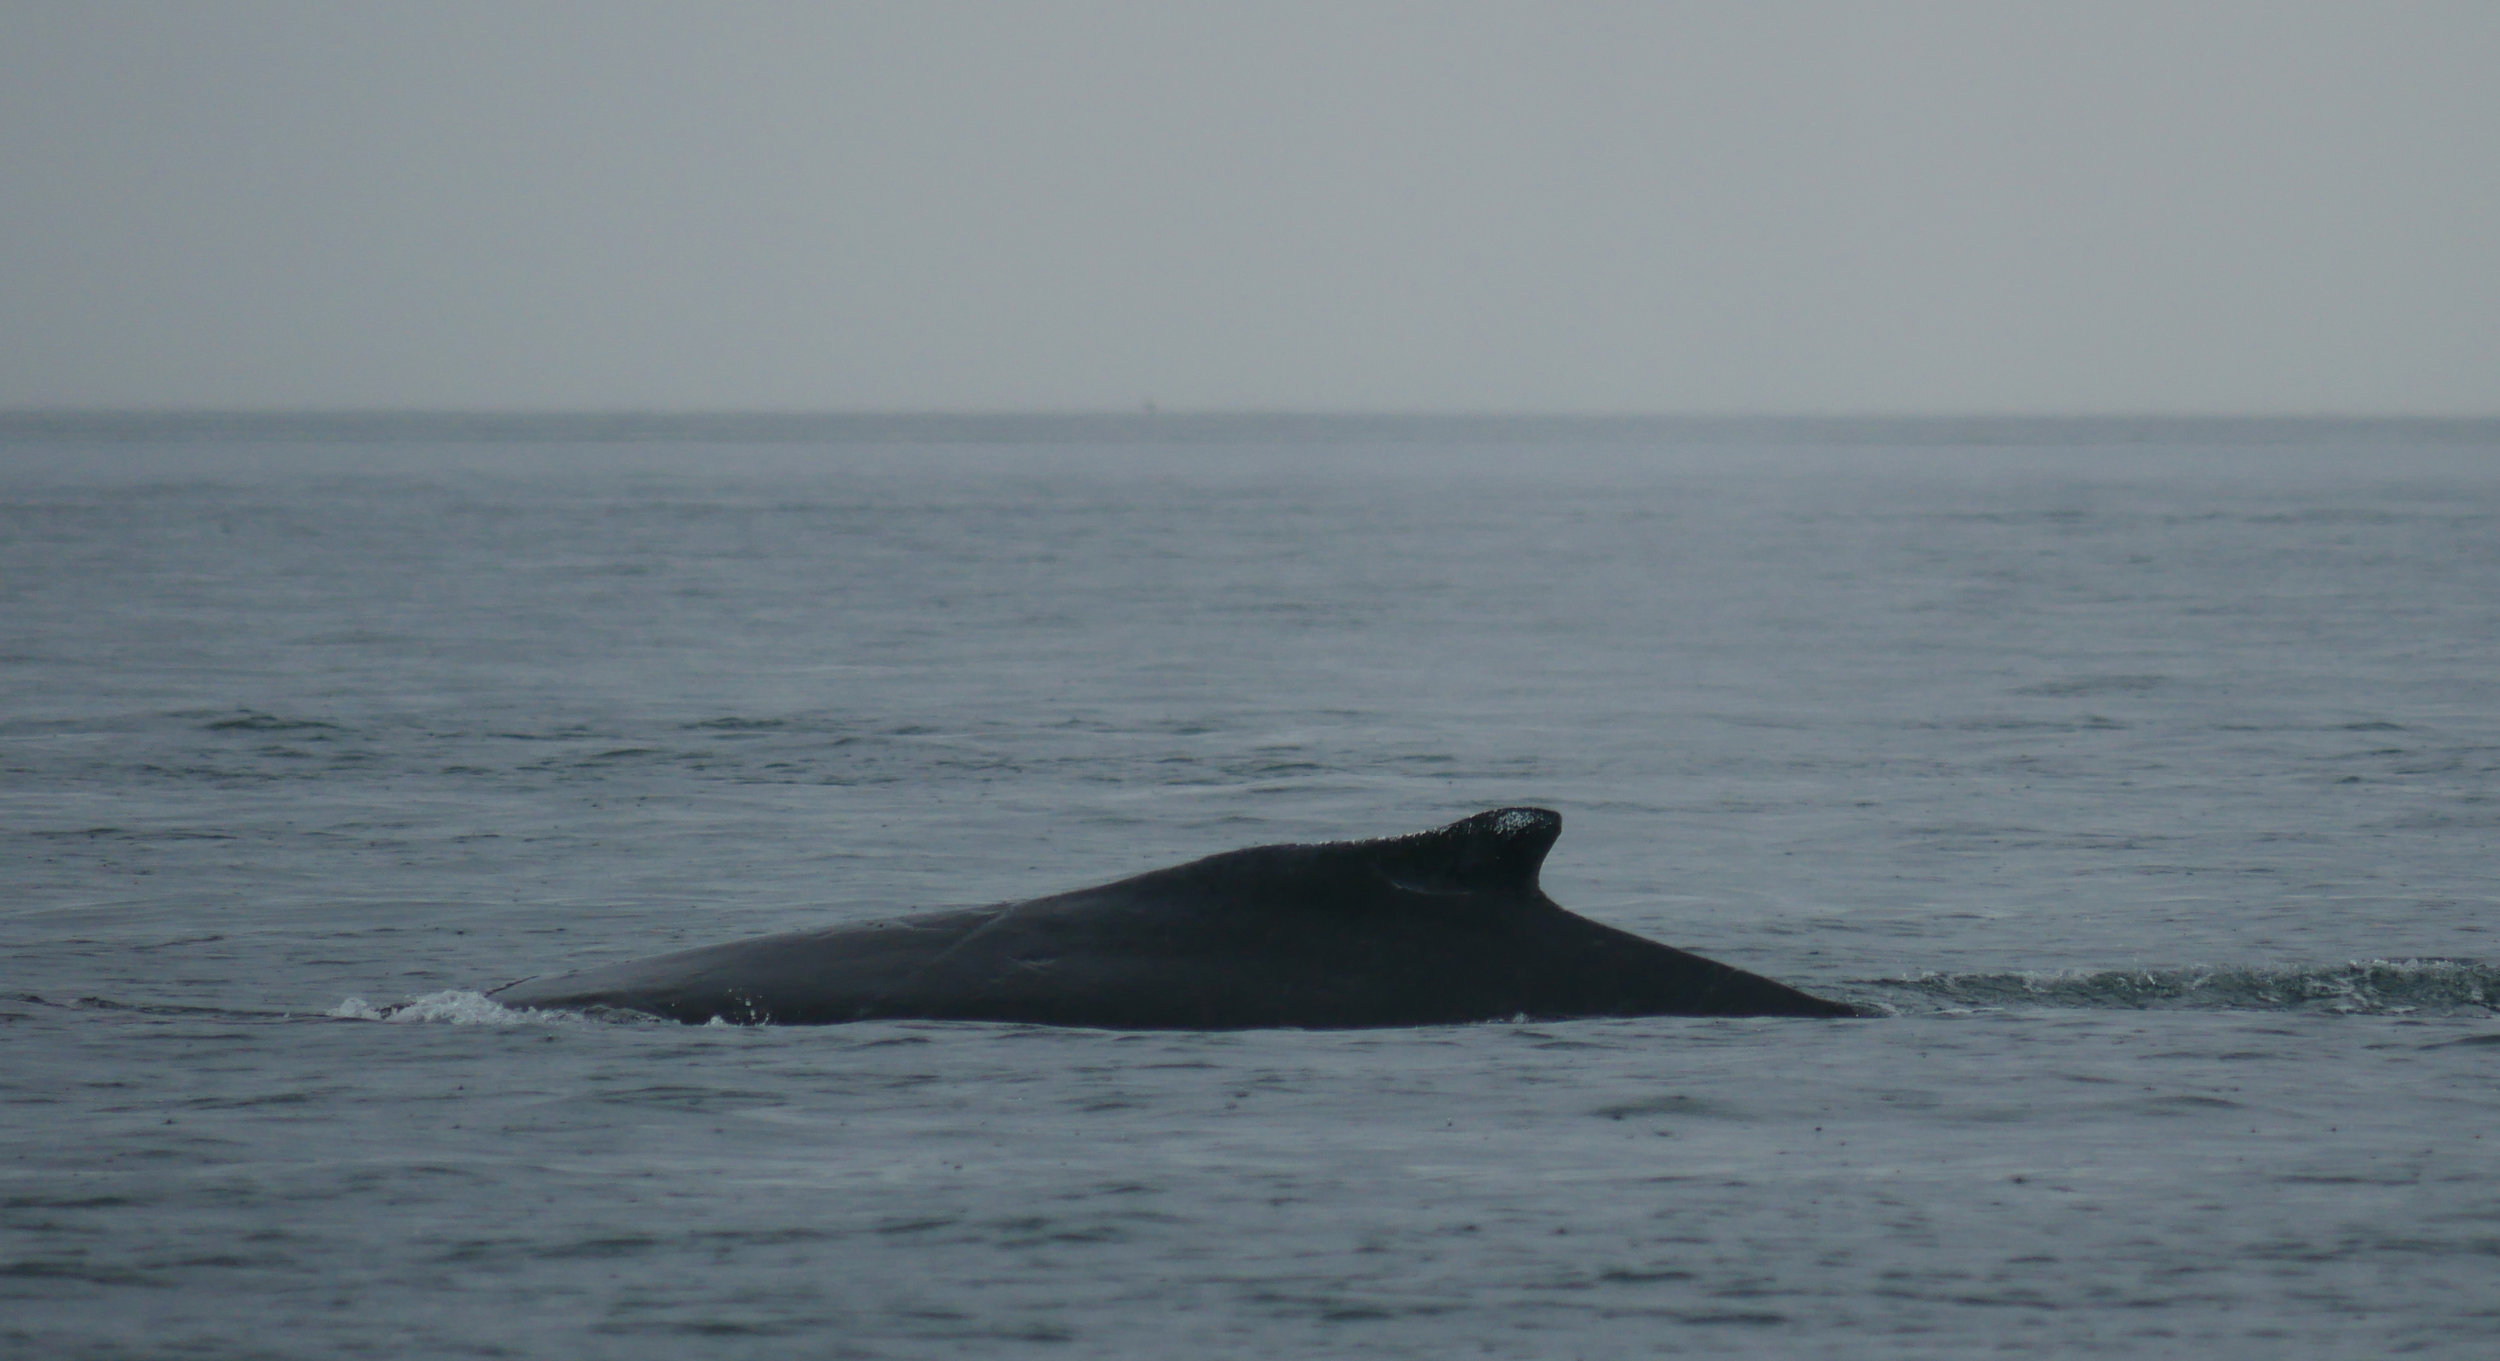 Windy can be identified by the white patch on her dorsal fin. Photo by Val Watson.